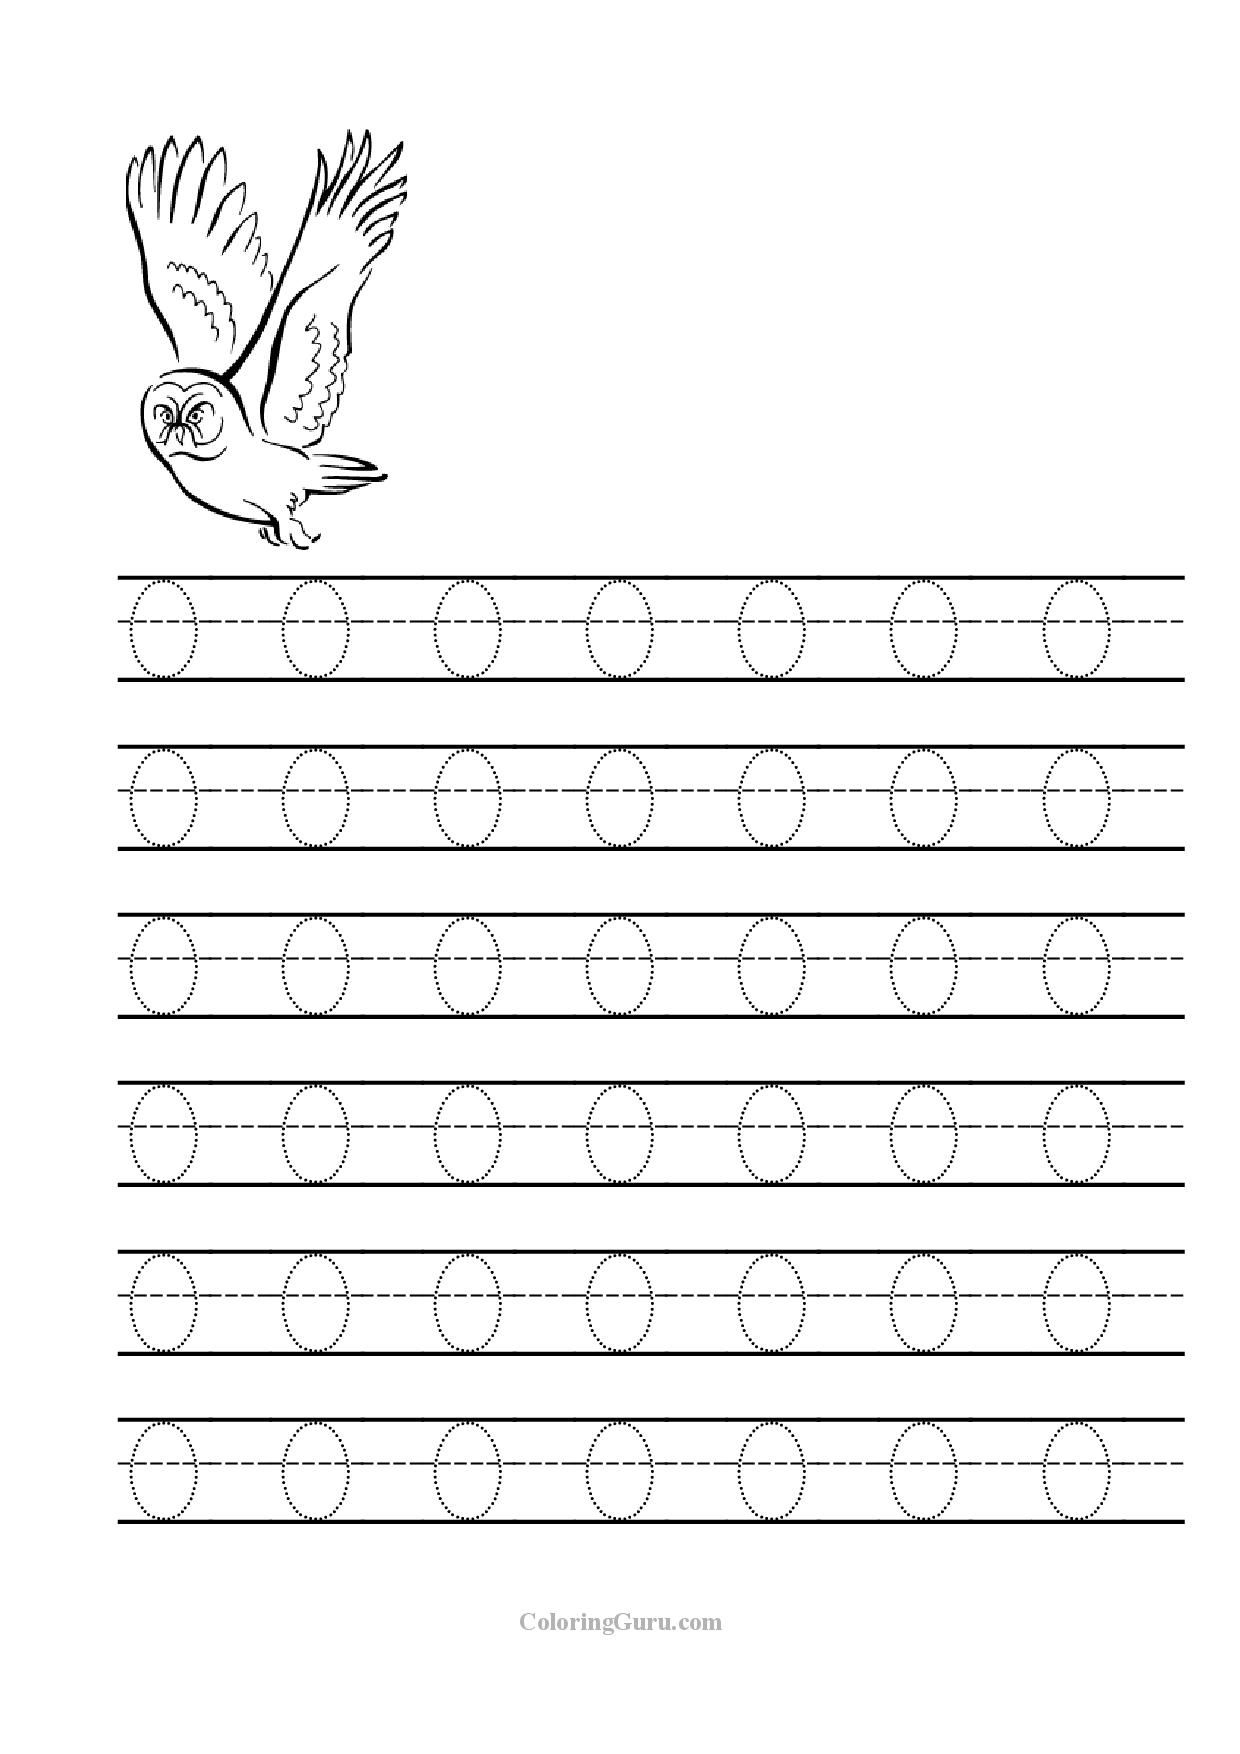 Tracing Letter O Worksheets For Preschool 1 240 1 754